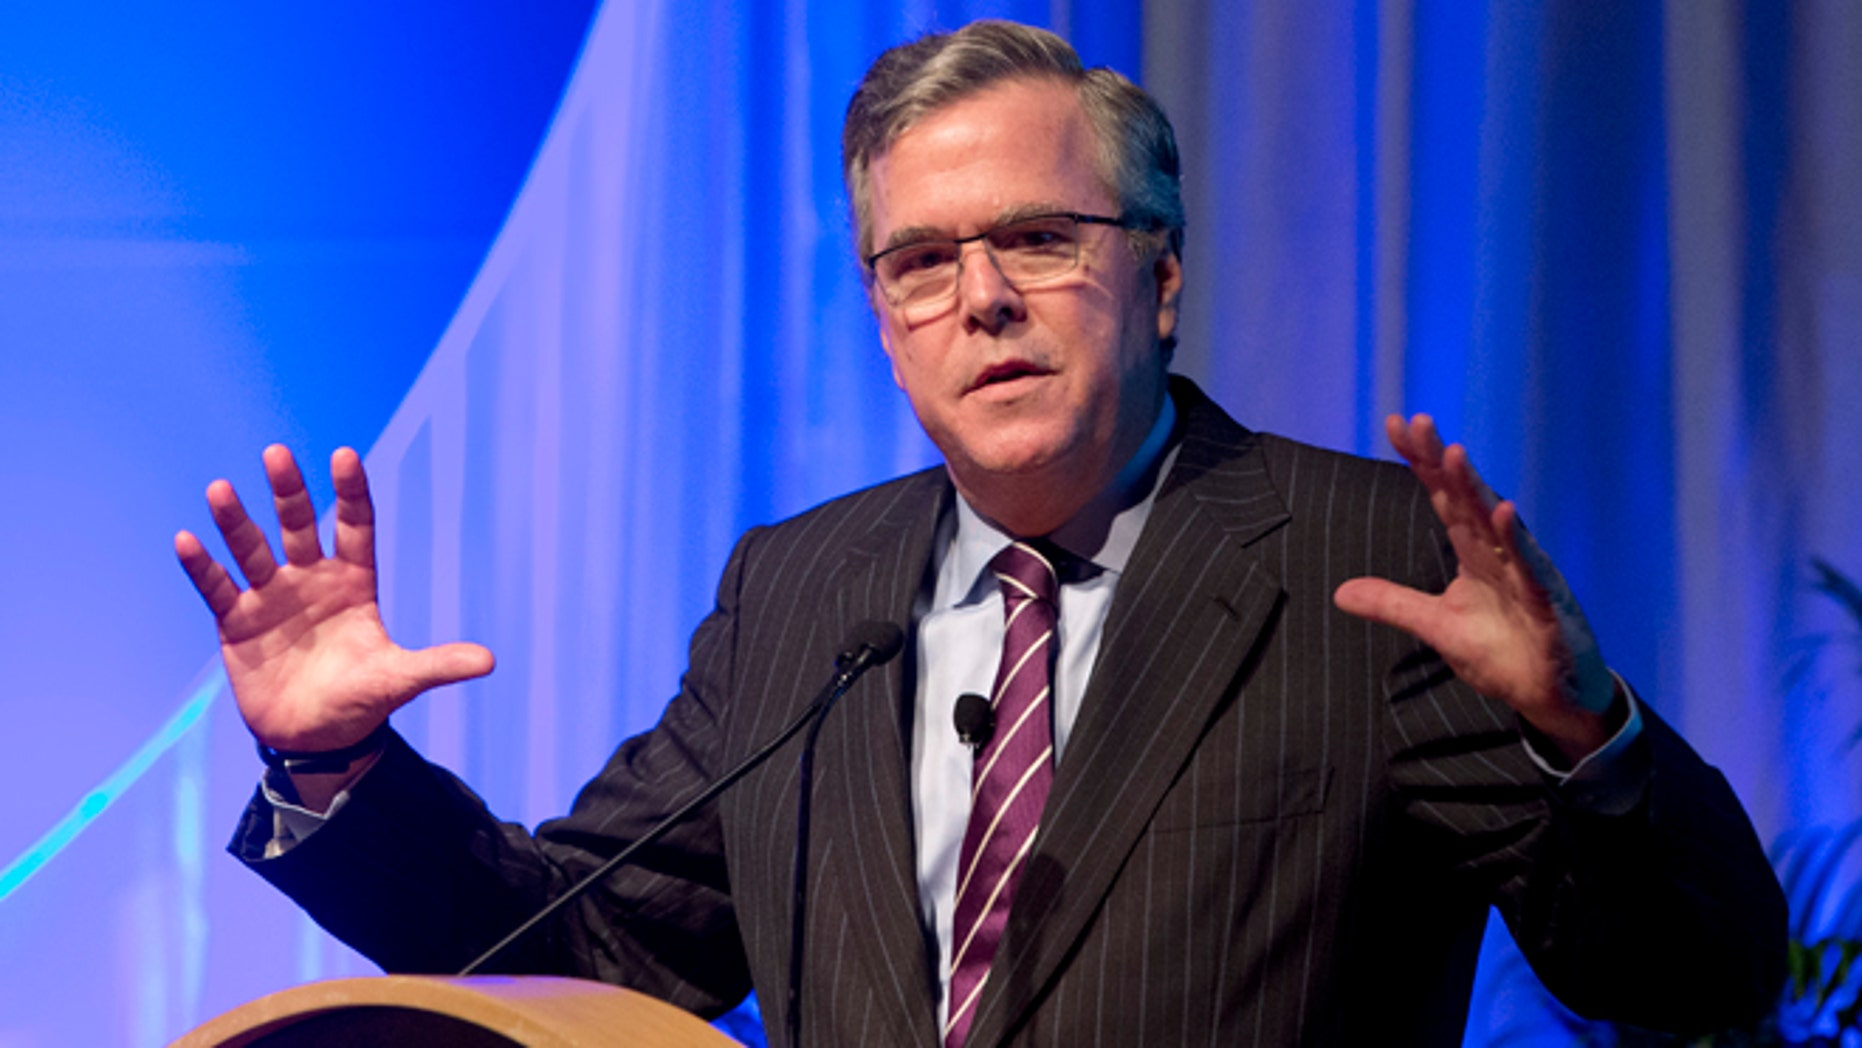 """This Jan. 29, 2014 photo, former Florida Gov. Jeb Bush gestures as he speaks at the Inside ITFs Conference at the Westin Diplomat Resort & Spa in Hollywood, Fla.  Bush says he's all the speculation about whether he'll run for president in 2016 is actually getting him more attention than if he had already entered the race. The former Republican governor of Florida says that's not by design, and that he'll make his decision before year's end. He tells Fox News Channel that the state of politics is ``crazy right now."""" (AP Photo/Wilfredo Lee)"""